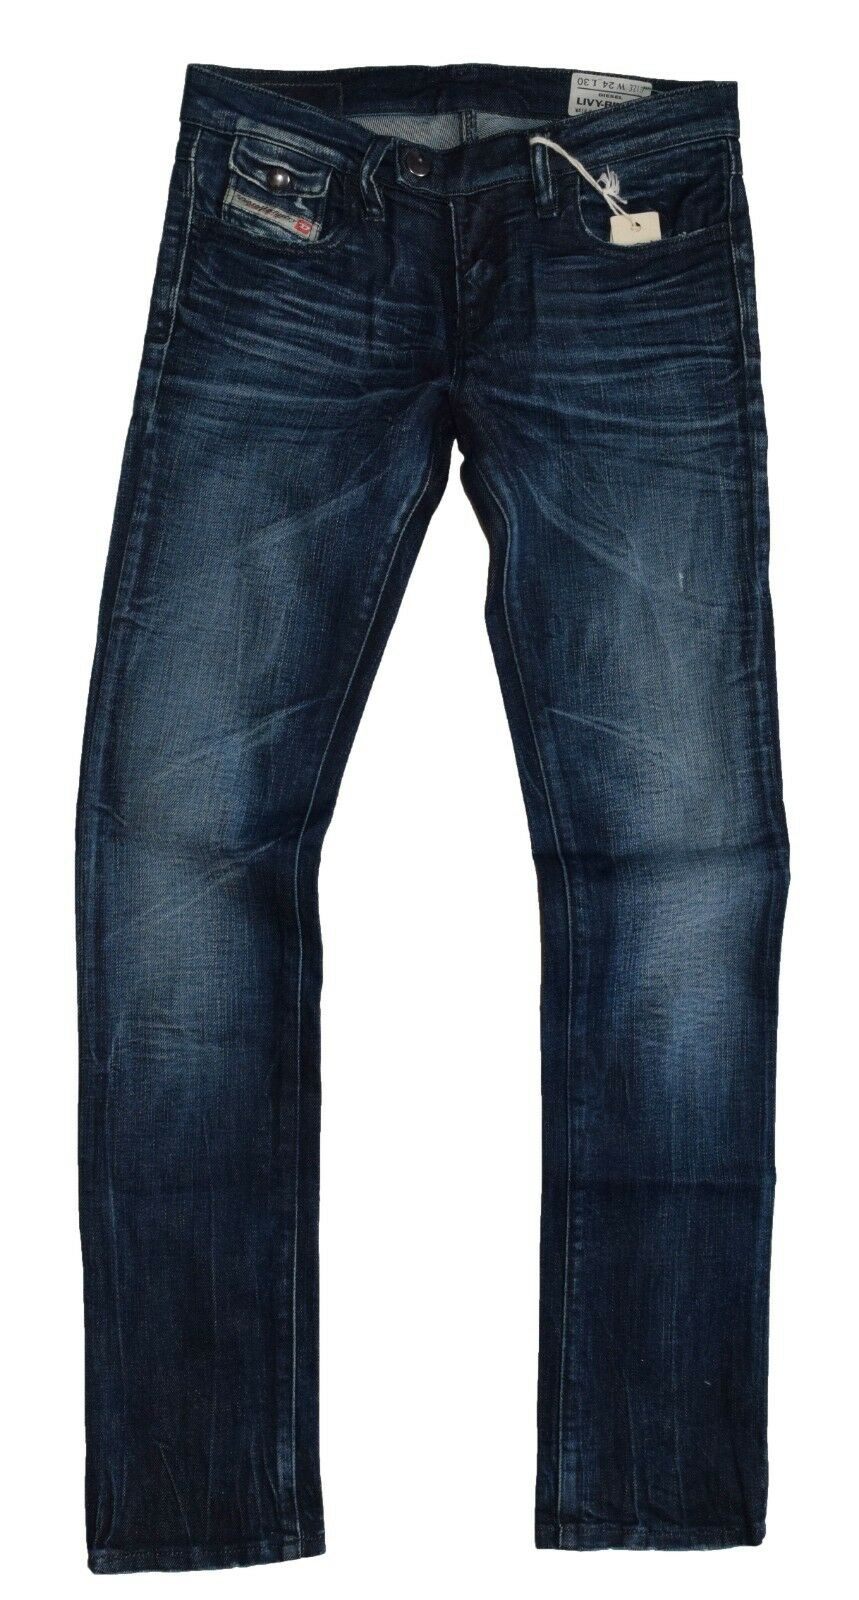 Diesel Livy Biker 008XT Womens jeans Slim Stretch size 26 32 New With Tags